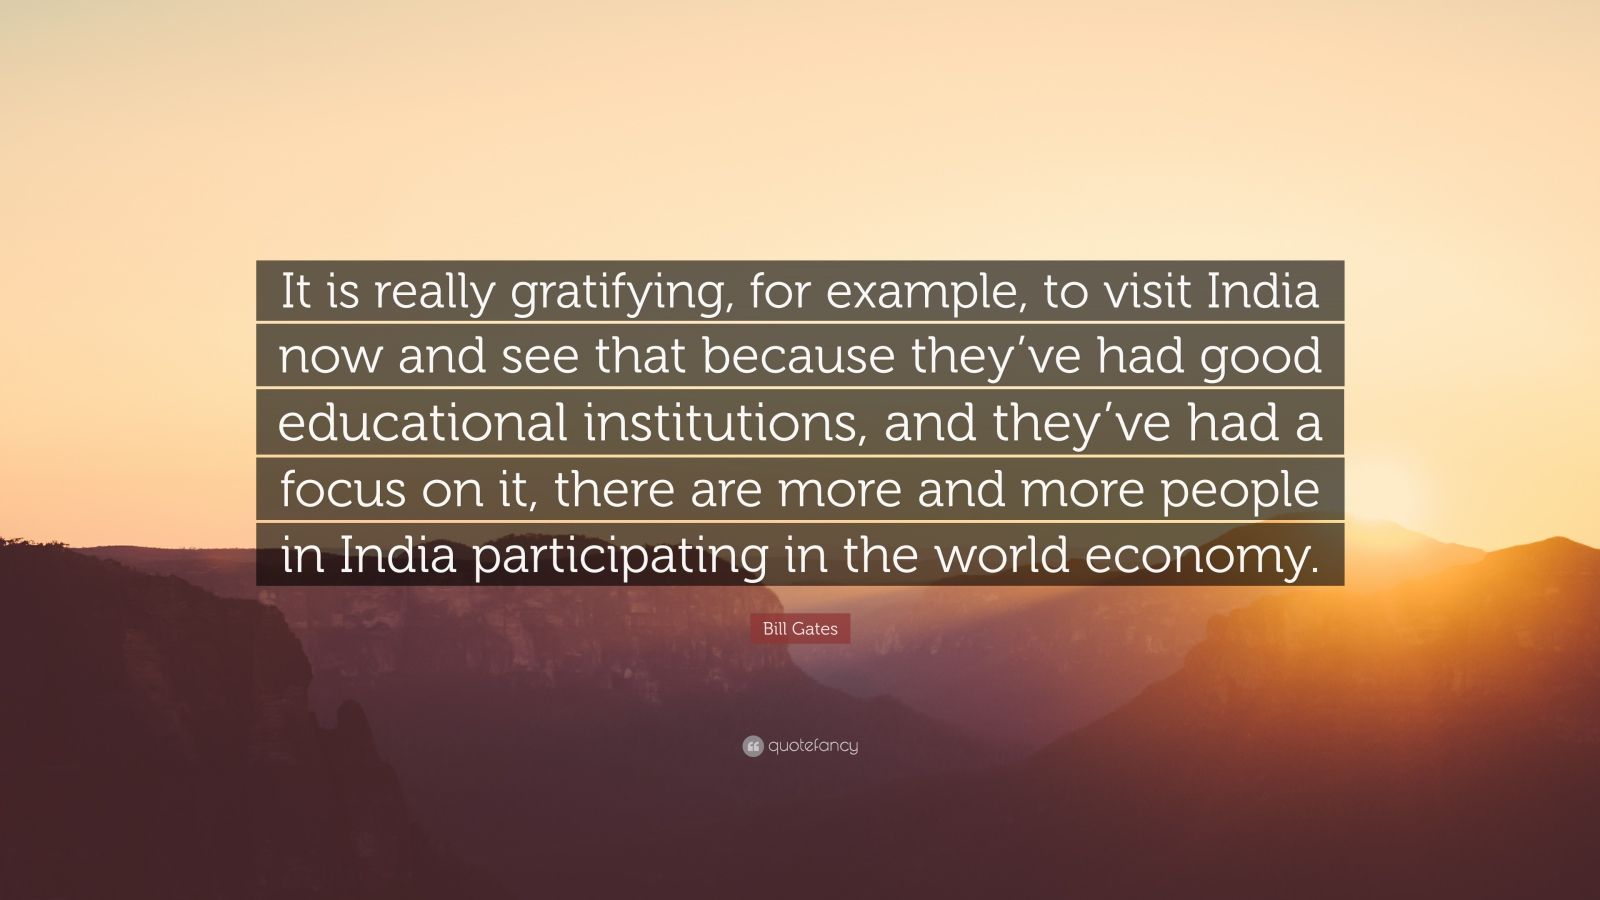 "Bill Gates Quote: ""It is really gratifying, for example, to visit India now and see that because they've had good educational institutions, and they've had a focus on it, there are more and more people in India participating in the world economy."""